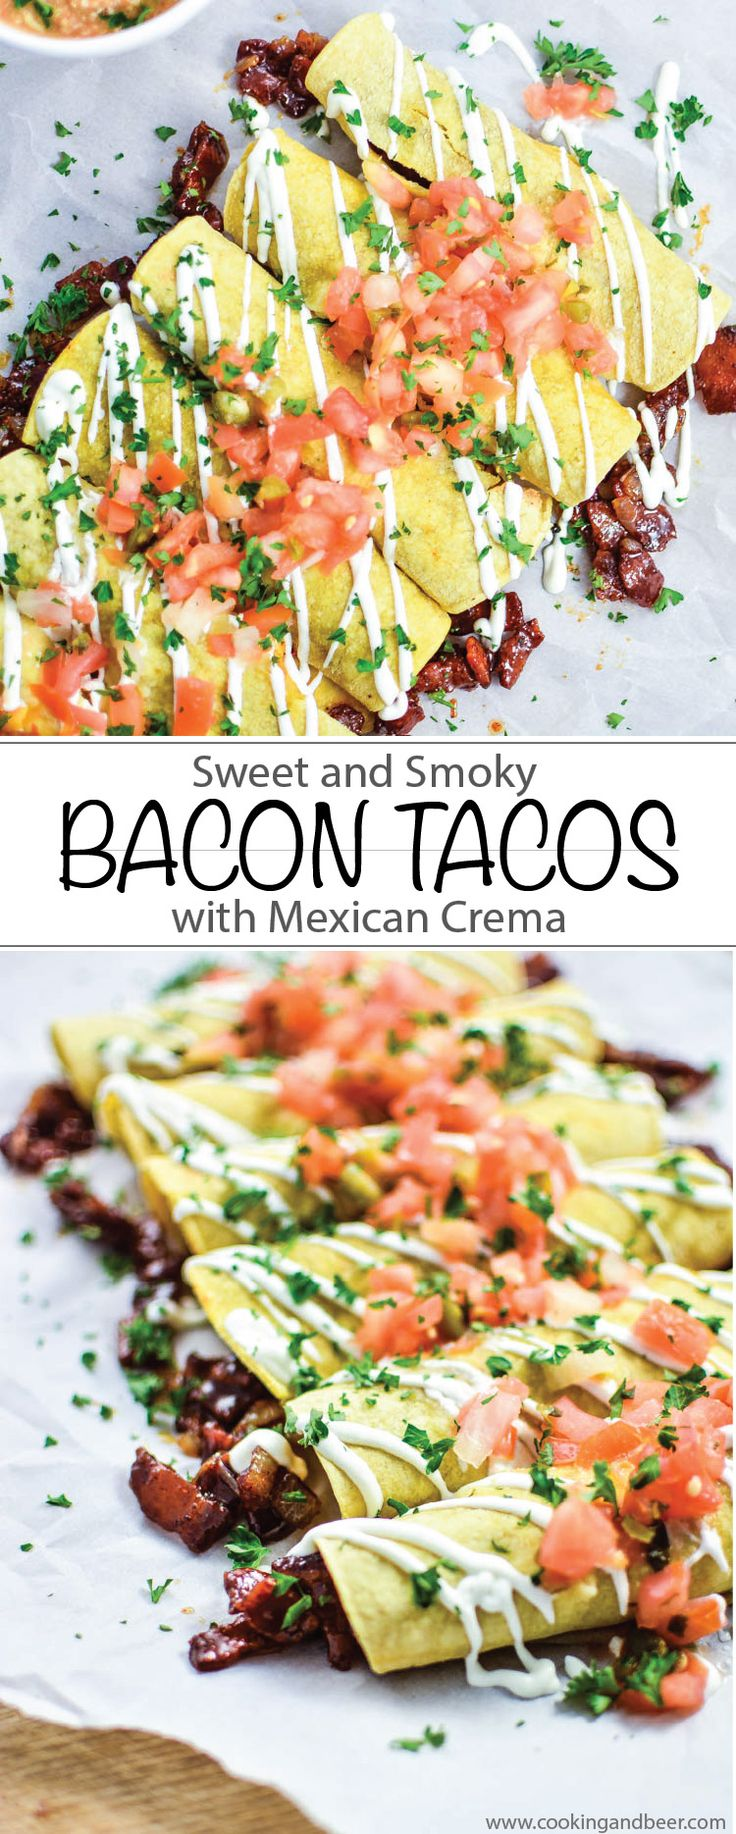 Sweet and Smoky Bacon Tacos with Mexican Crema are gluten free and ready in minutes making it the perfect lunch or weeknight dinner!   www.cookingandbeer.com